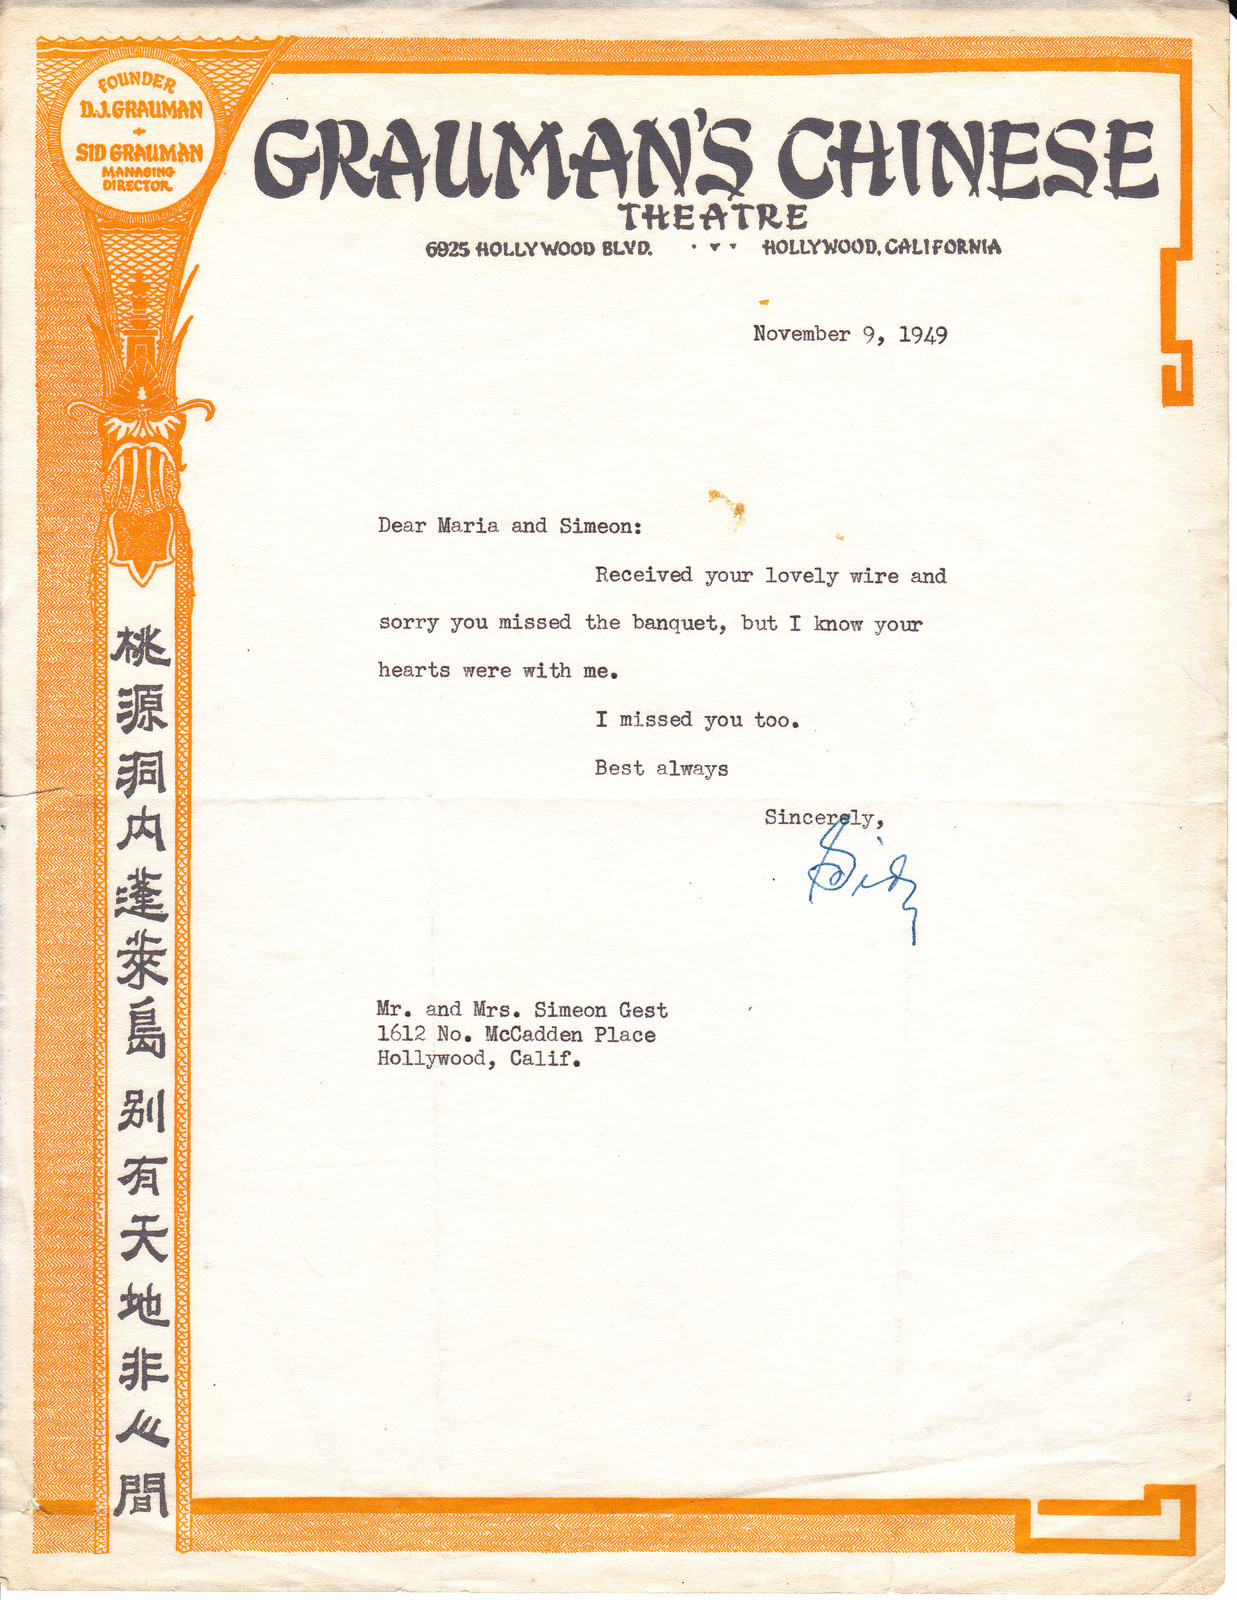 Grauman's Chinese Theatre vintage letterhead